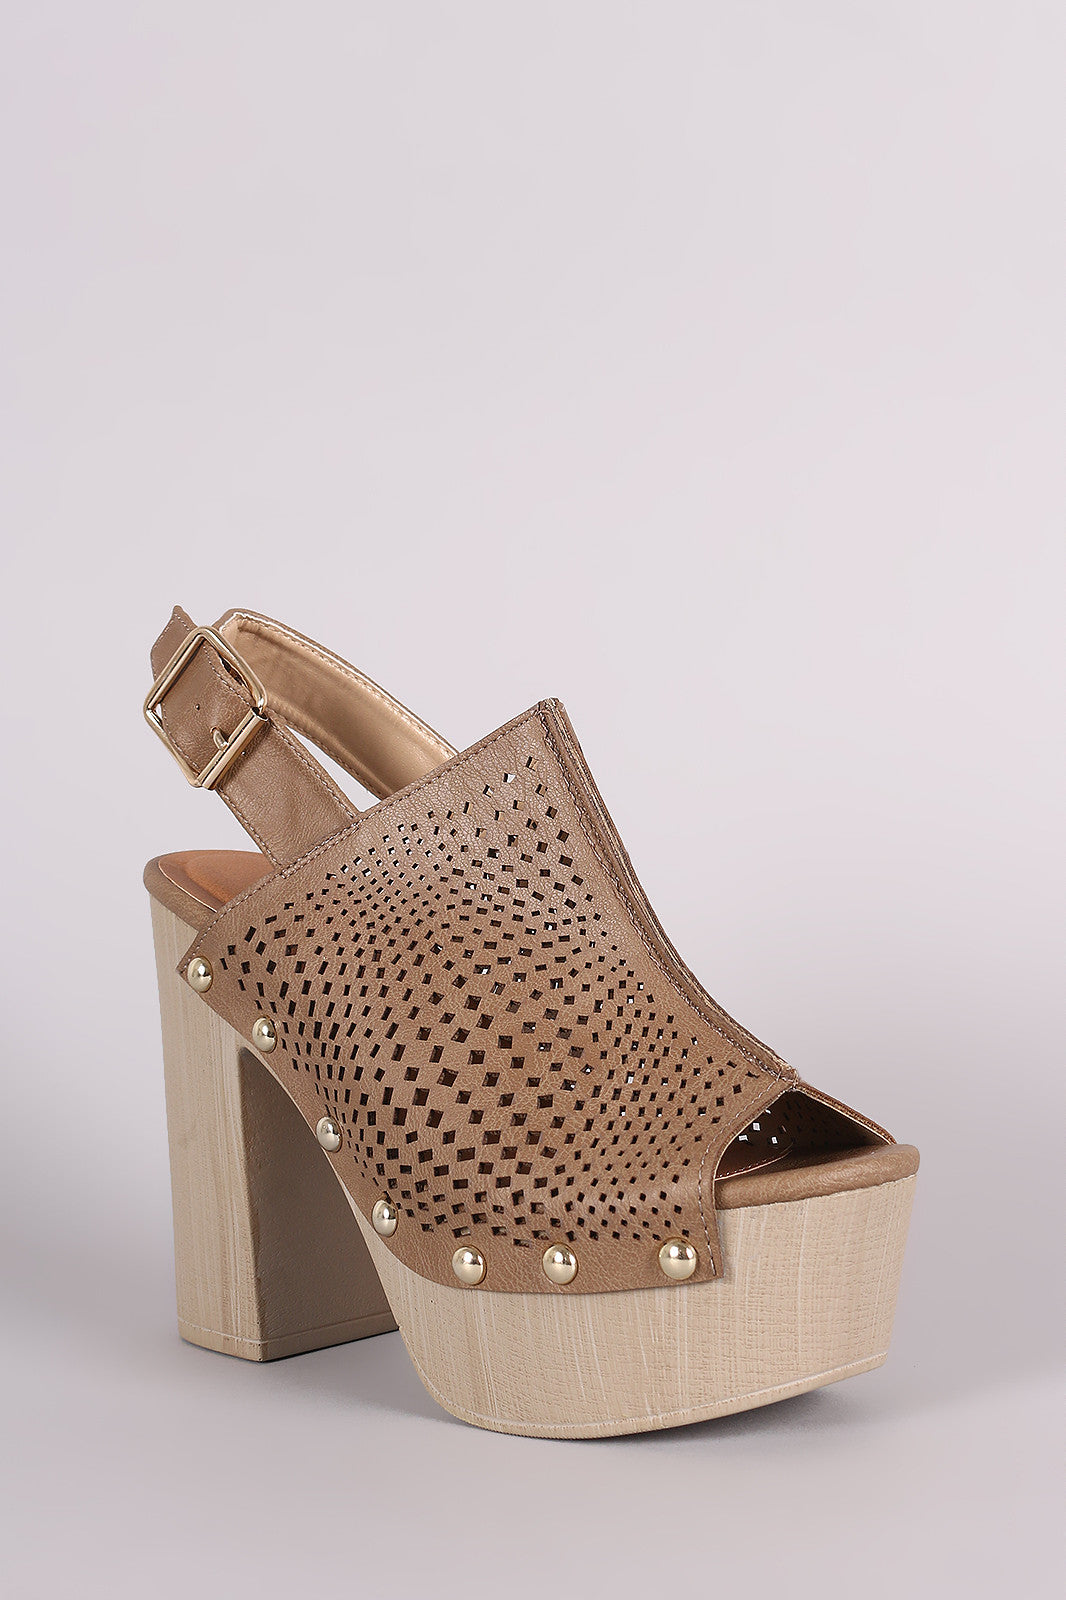 Qupid Perforated Slingback Studded Chunky Platform Mule Heel - Thick 'N' Curvy Shop - 5